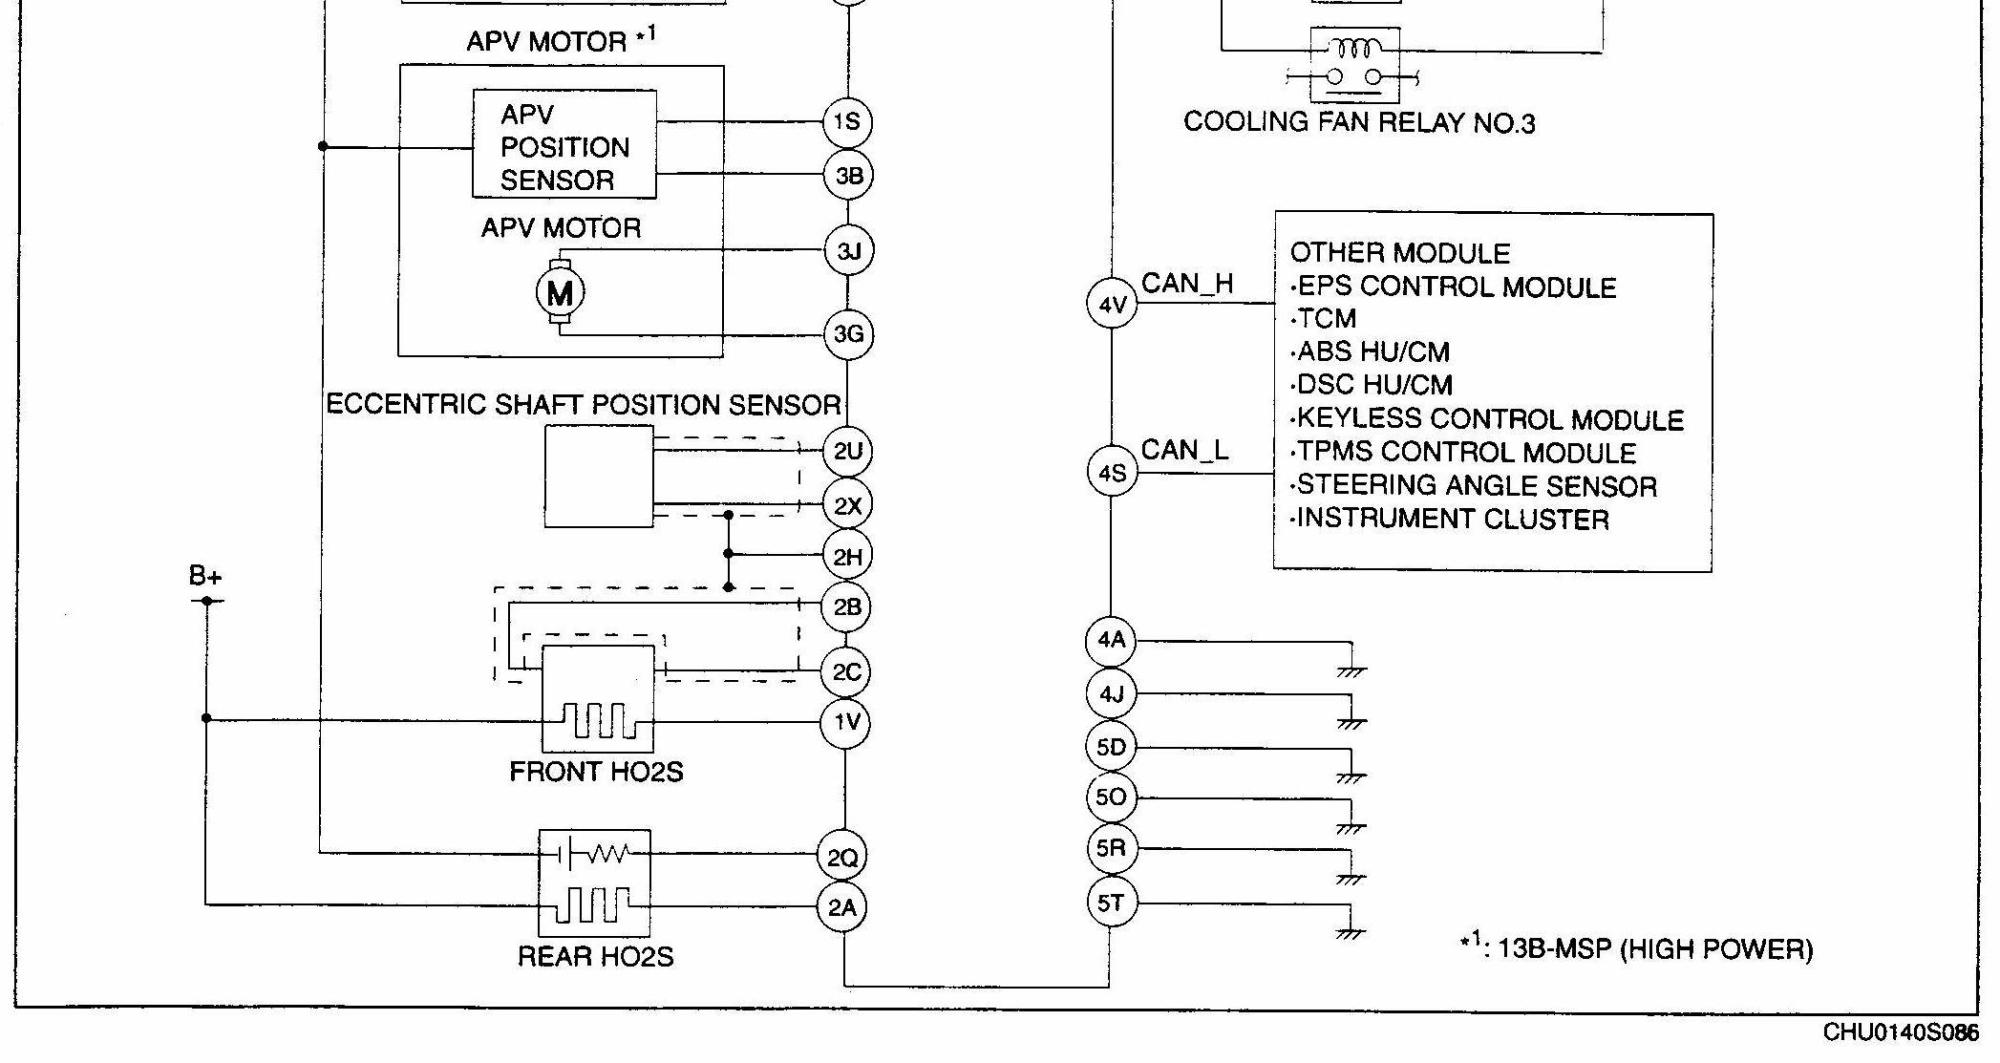 hight resolution of i am in need of the diagram which translates the below image to the actual pins on the ecu if anyone has it i would be greatly appreciative